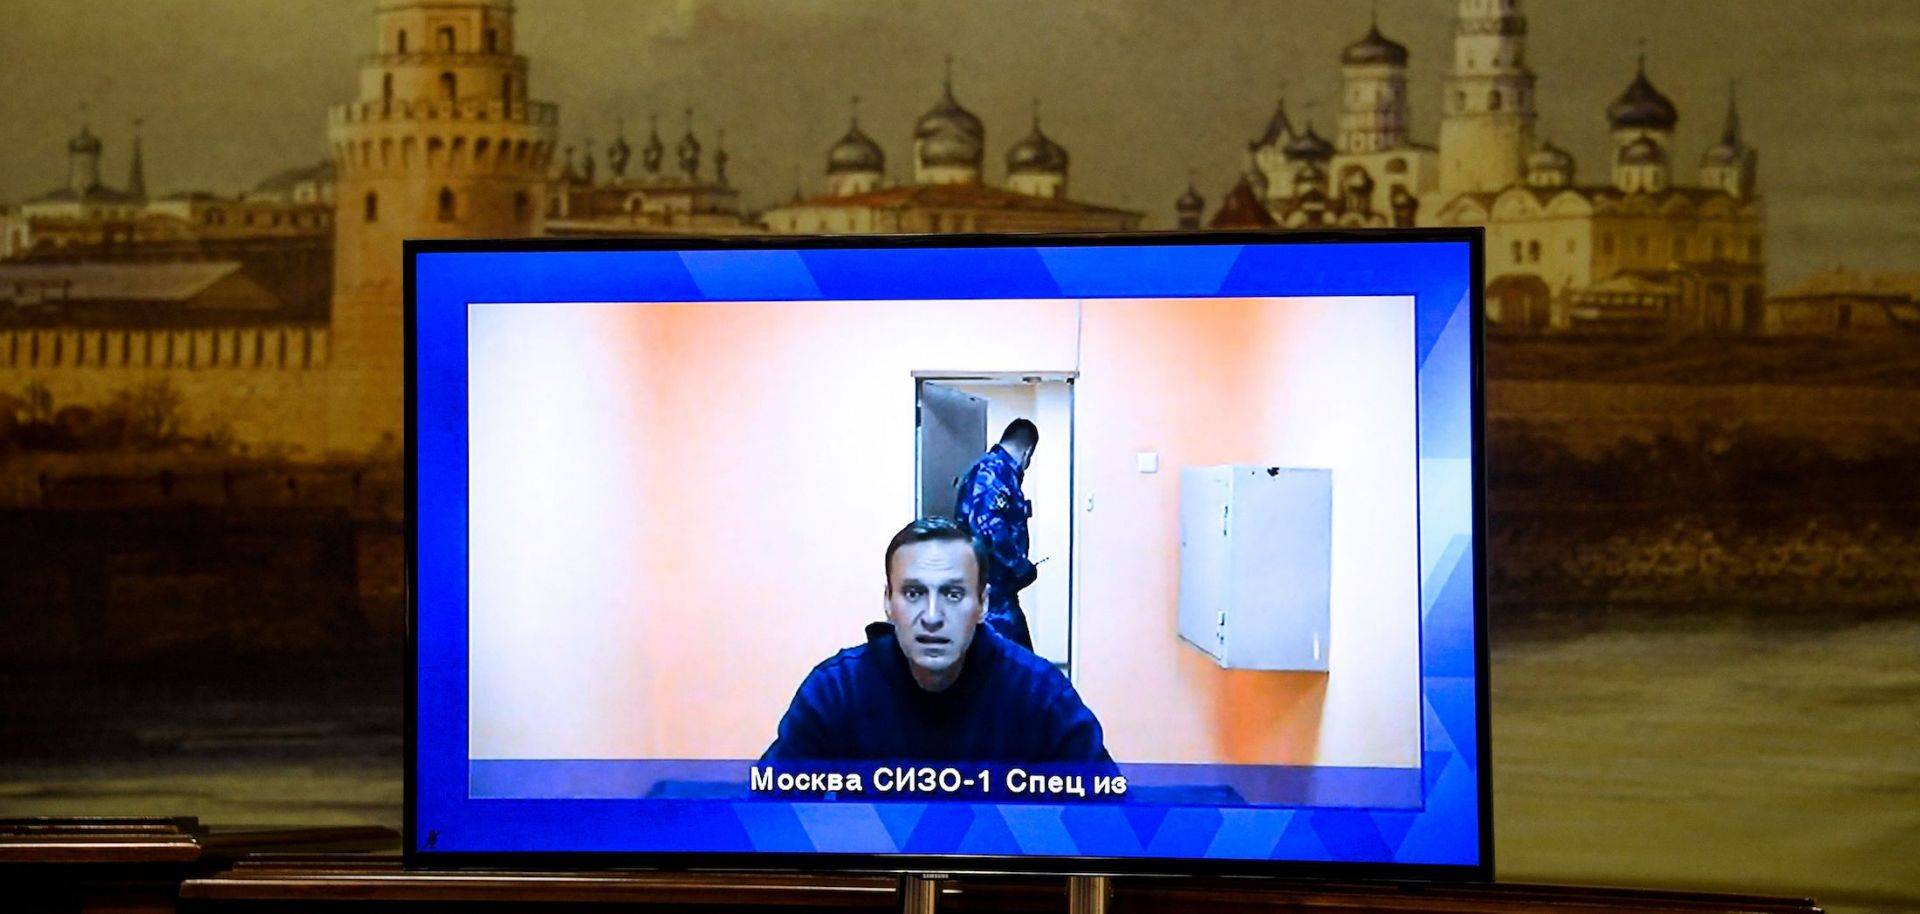 Russian opposition leader Alexei Navalny appears on a screen via a video link from Moscow's penal detention center during a court hearing of an appeal against his arrest in Krasnogorsk, Russia, on Jan. 28, 2021.